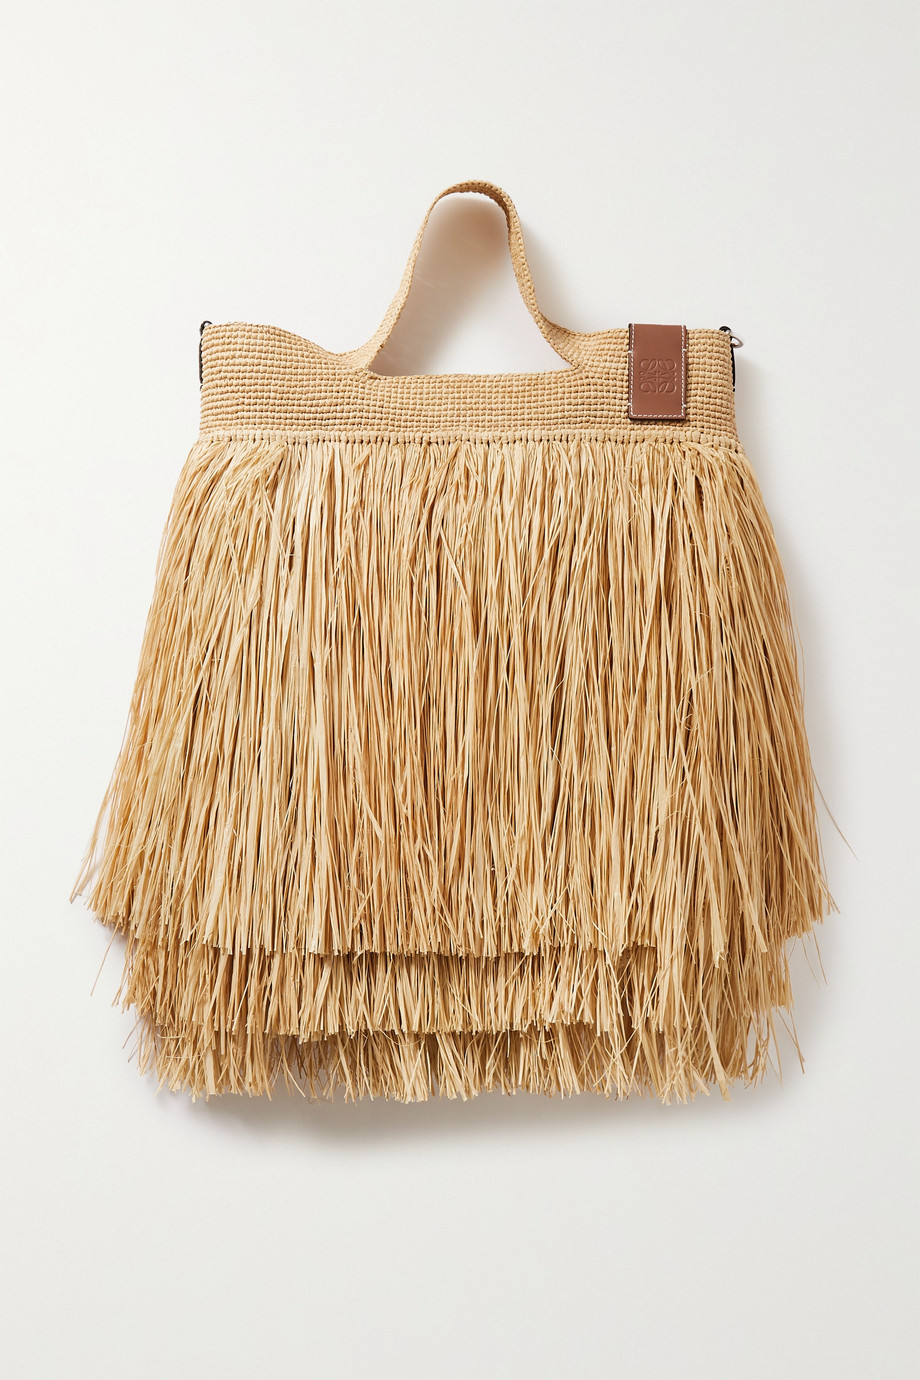 Loewe + Paula's Ibiza Slit leather-trimmed fringed raffia tote